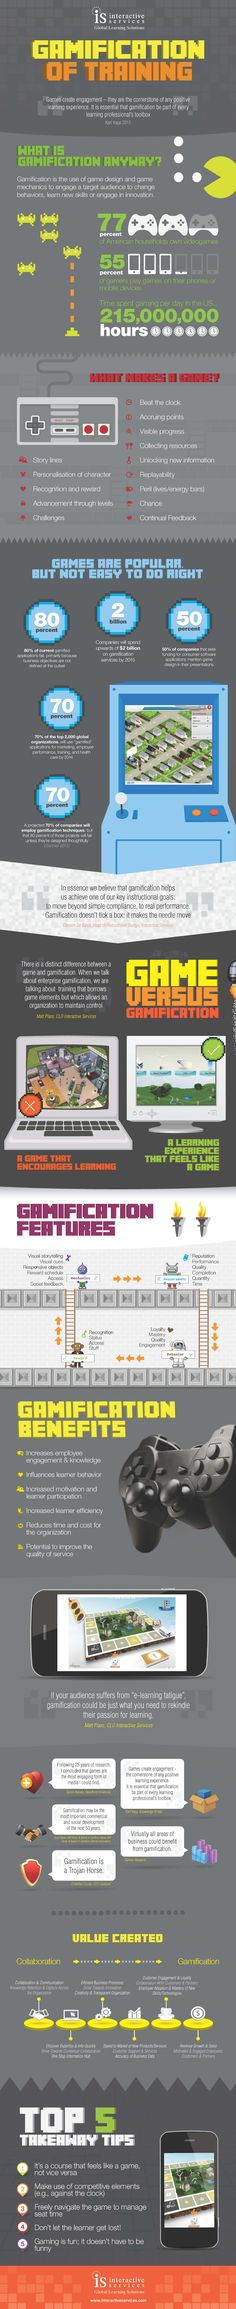 The Gamification of Training Infographic presents how gamification can be a highly engaging method of training employees and how it is being used to support performance initiatives.